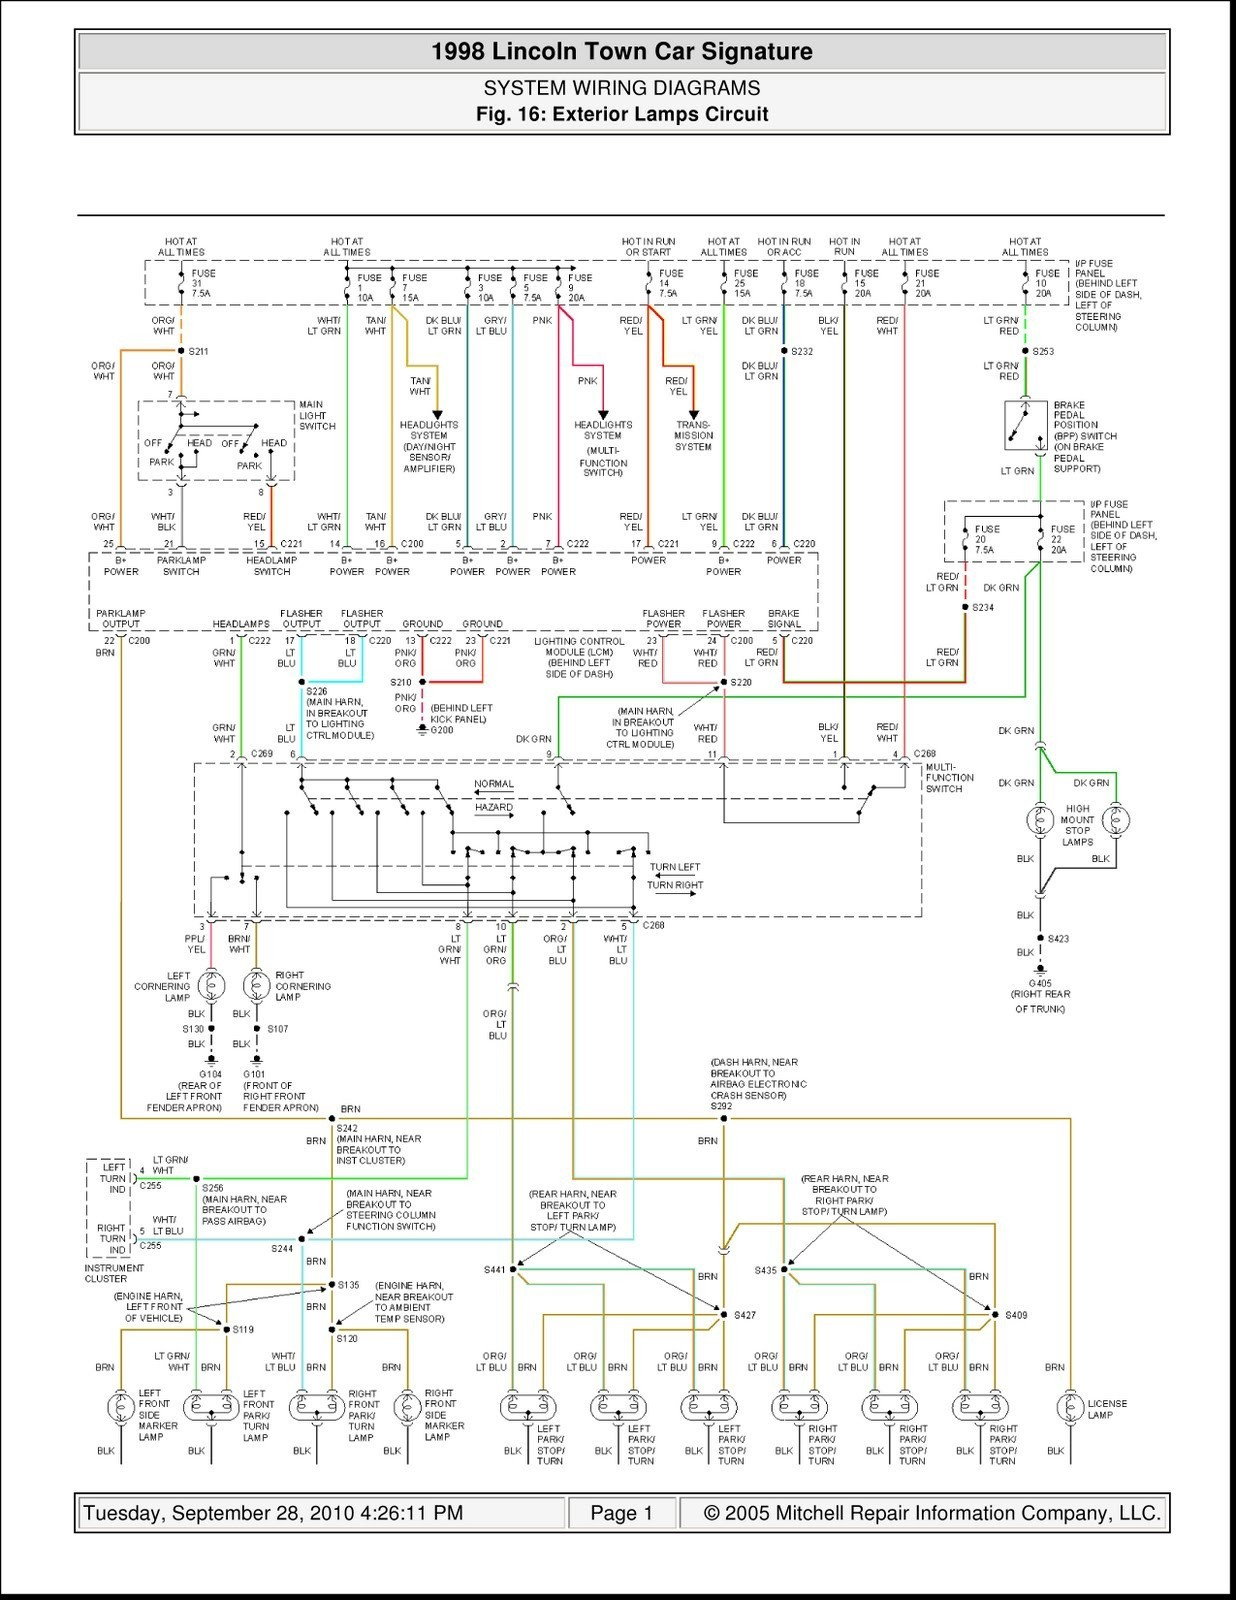 2001 Lincoln Navigator Engine Diagram Lincoln Continental Engine Diagram Worksheet and Wiring Diagram • Of 2001 Lincoln Navigator Engine Diagram